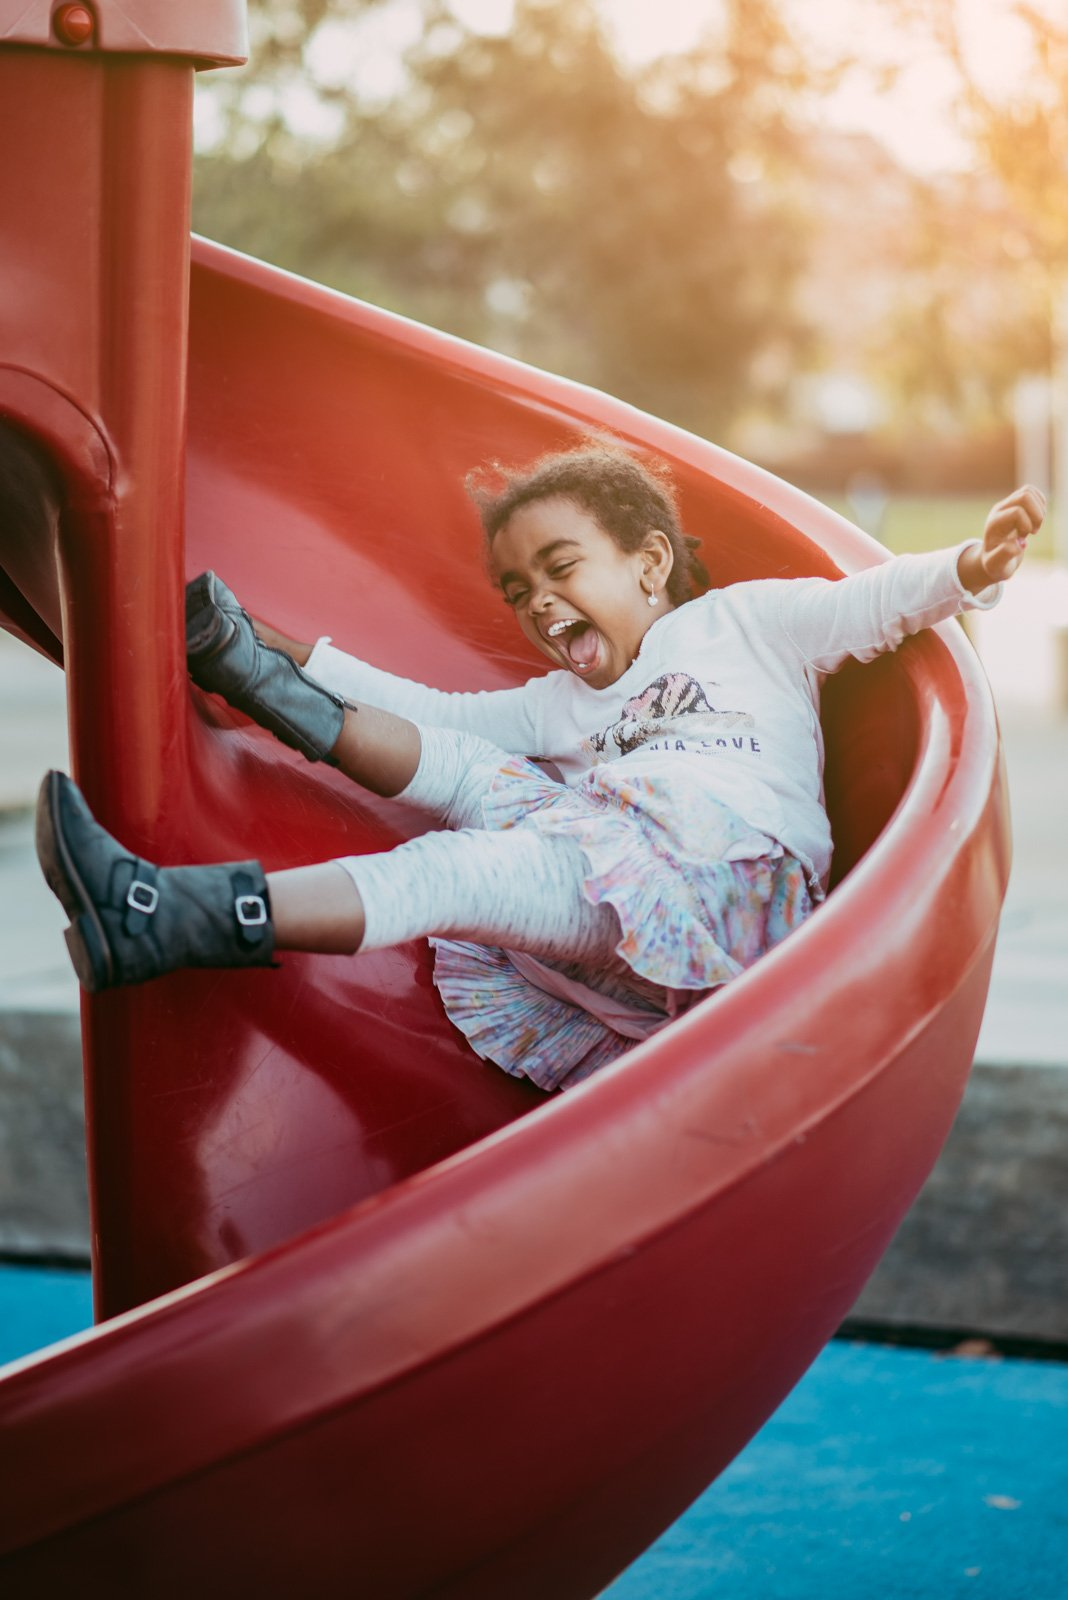 Christine Ekeroth_cjoyekeroth clickin moms march forum photo contest girl sliding down slide at playground